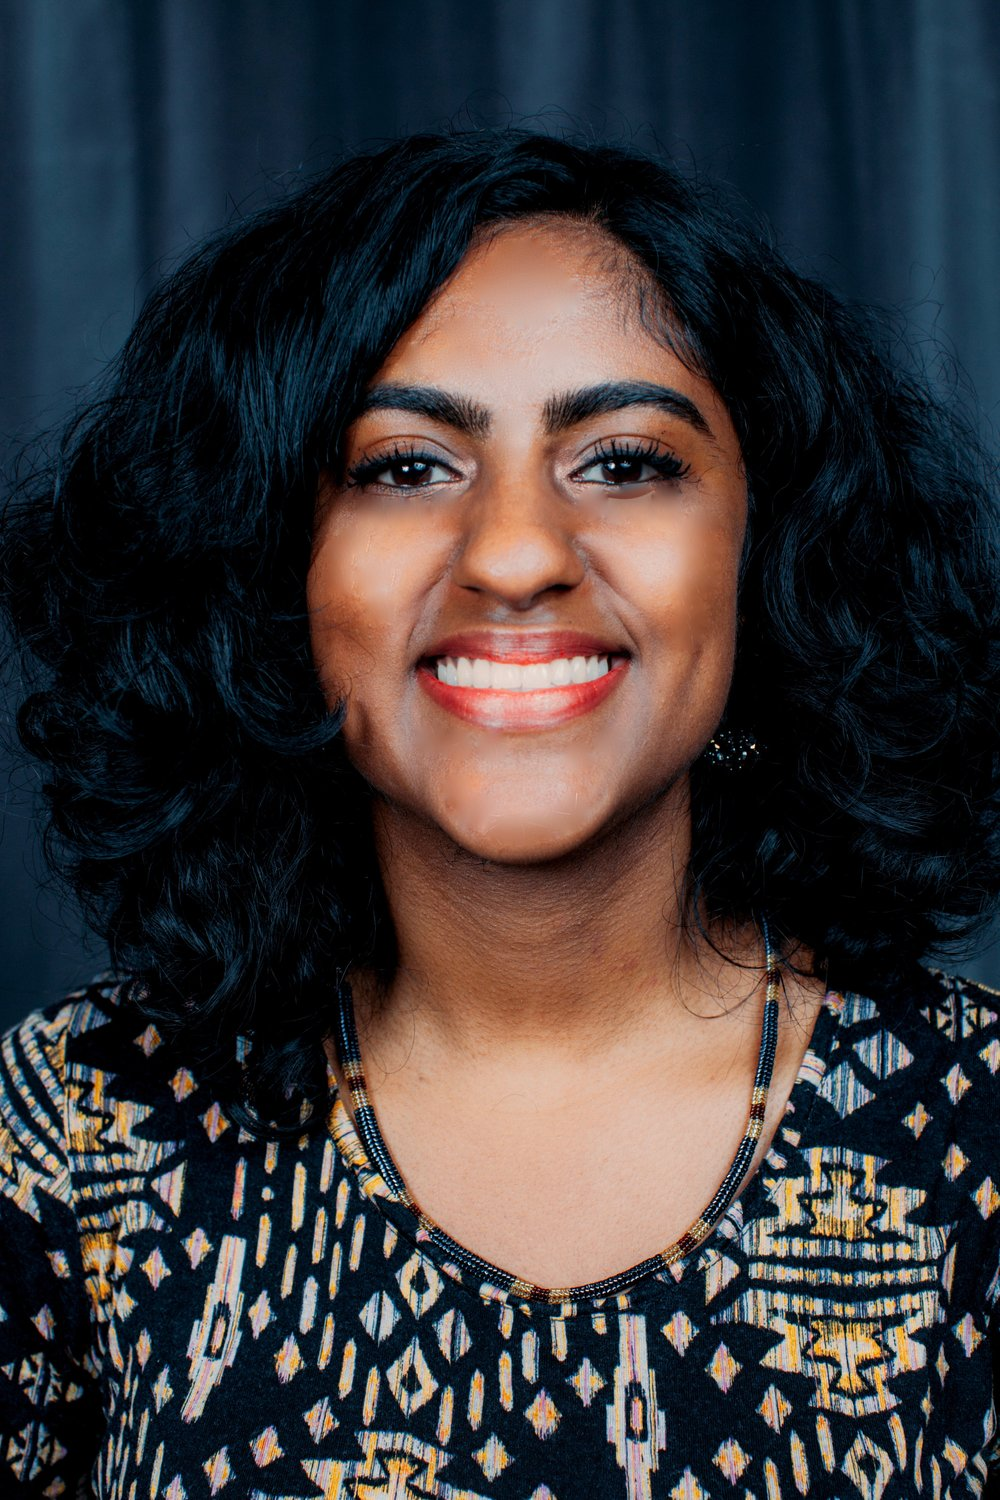 FOOD PANTRY DIRECTOR - AMAEYA BIRADAVOLU is the Director of the Food Pantry Program, she is a proven leader in non profit and for profit sector, development strategist and women rights leader.